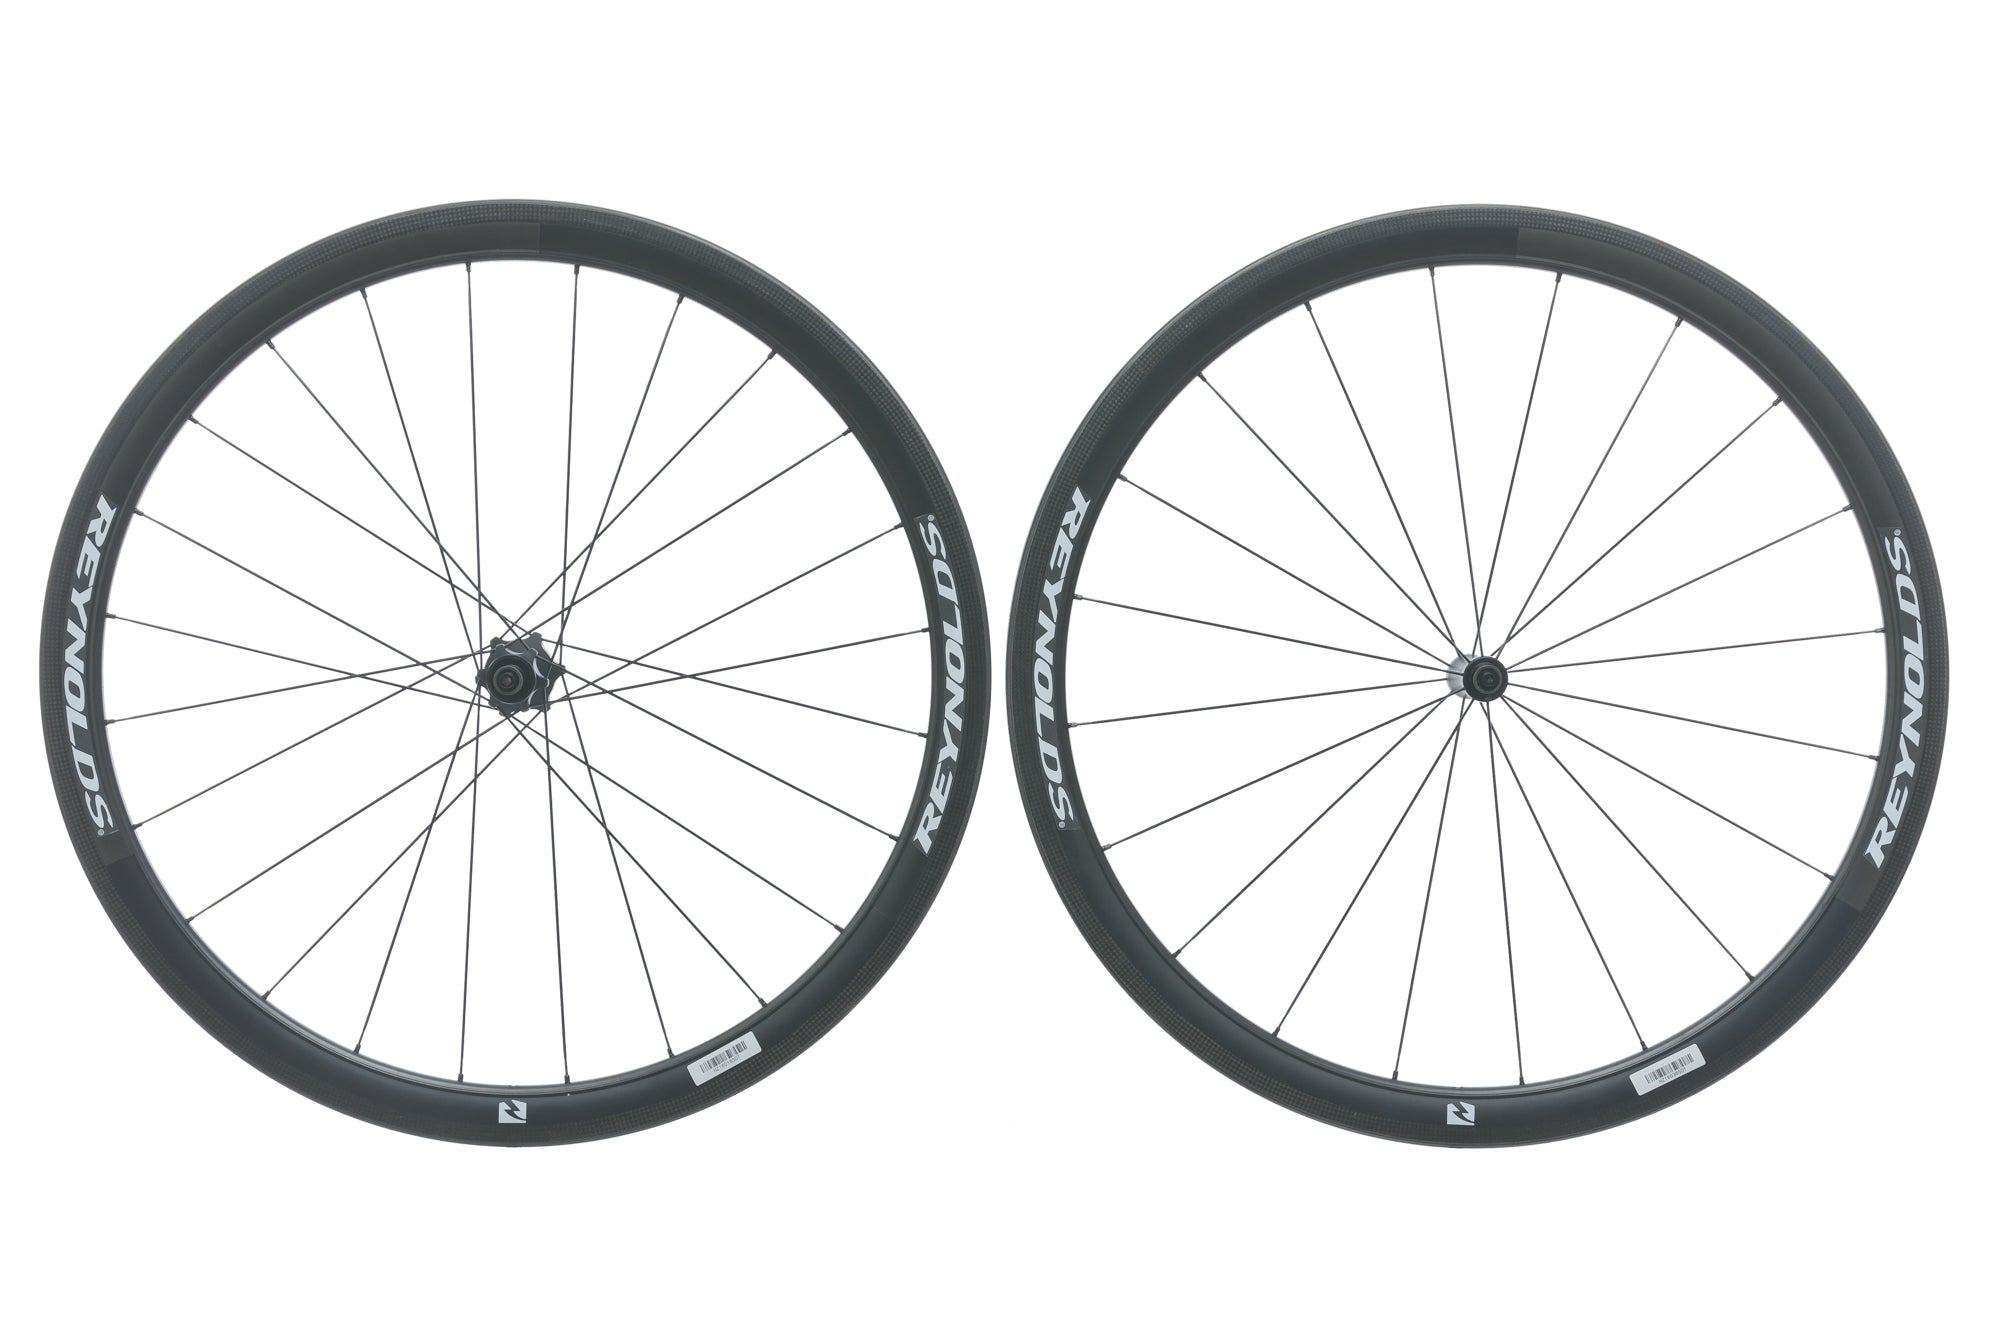 Reynolds Assault Carbon Clincher 700c Wheelset drive side